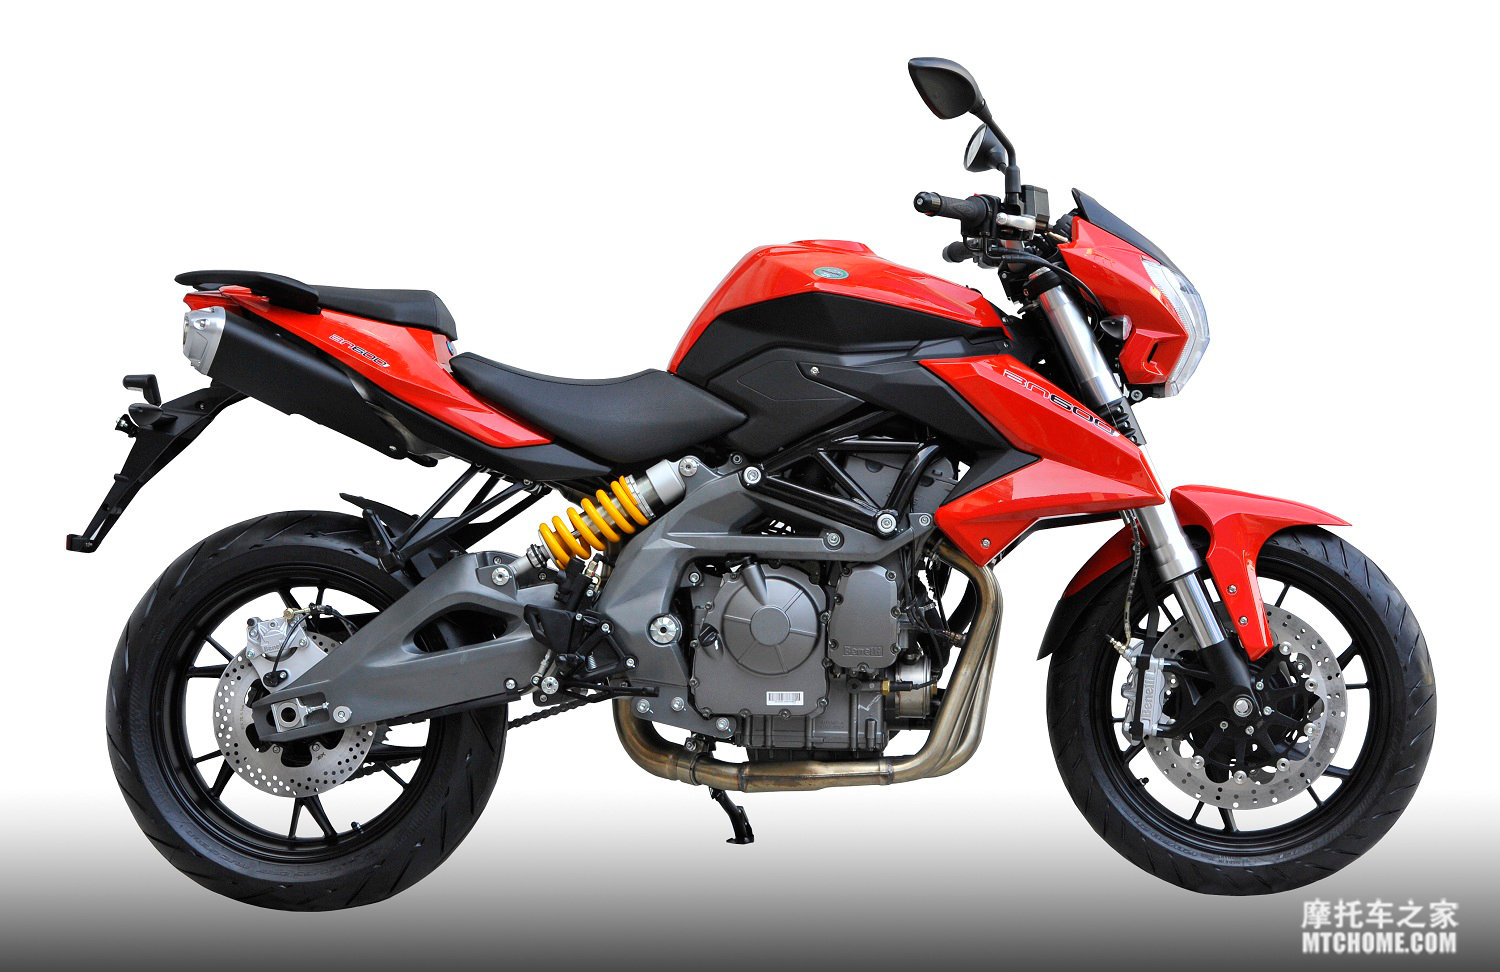 Ultimate Cafe Racer Kit in addition Ross On The Triumph Thruxton R moreover Yamaha R15 V2 Vs R15 S List Of 5 Differences Including Engine Detuning besides Viewtopic together with 17895. on 2016 new yamaha motorcycles